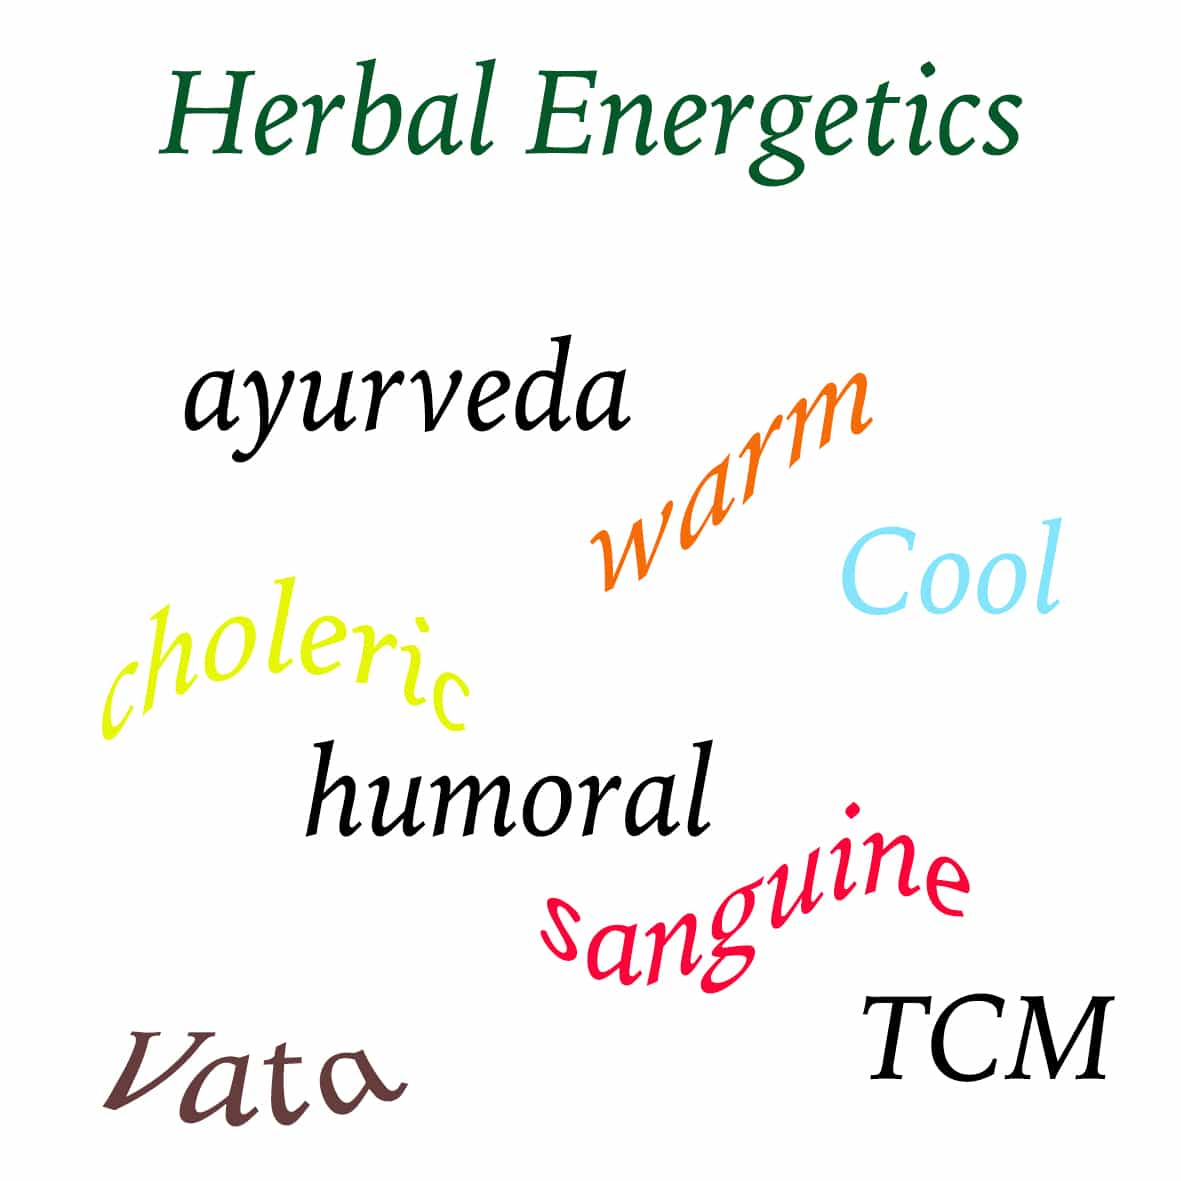 so what is Herbal Energetics ? Warm Cold Moist Dry ?